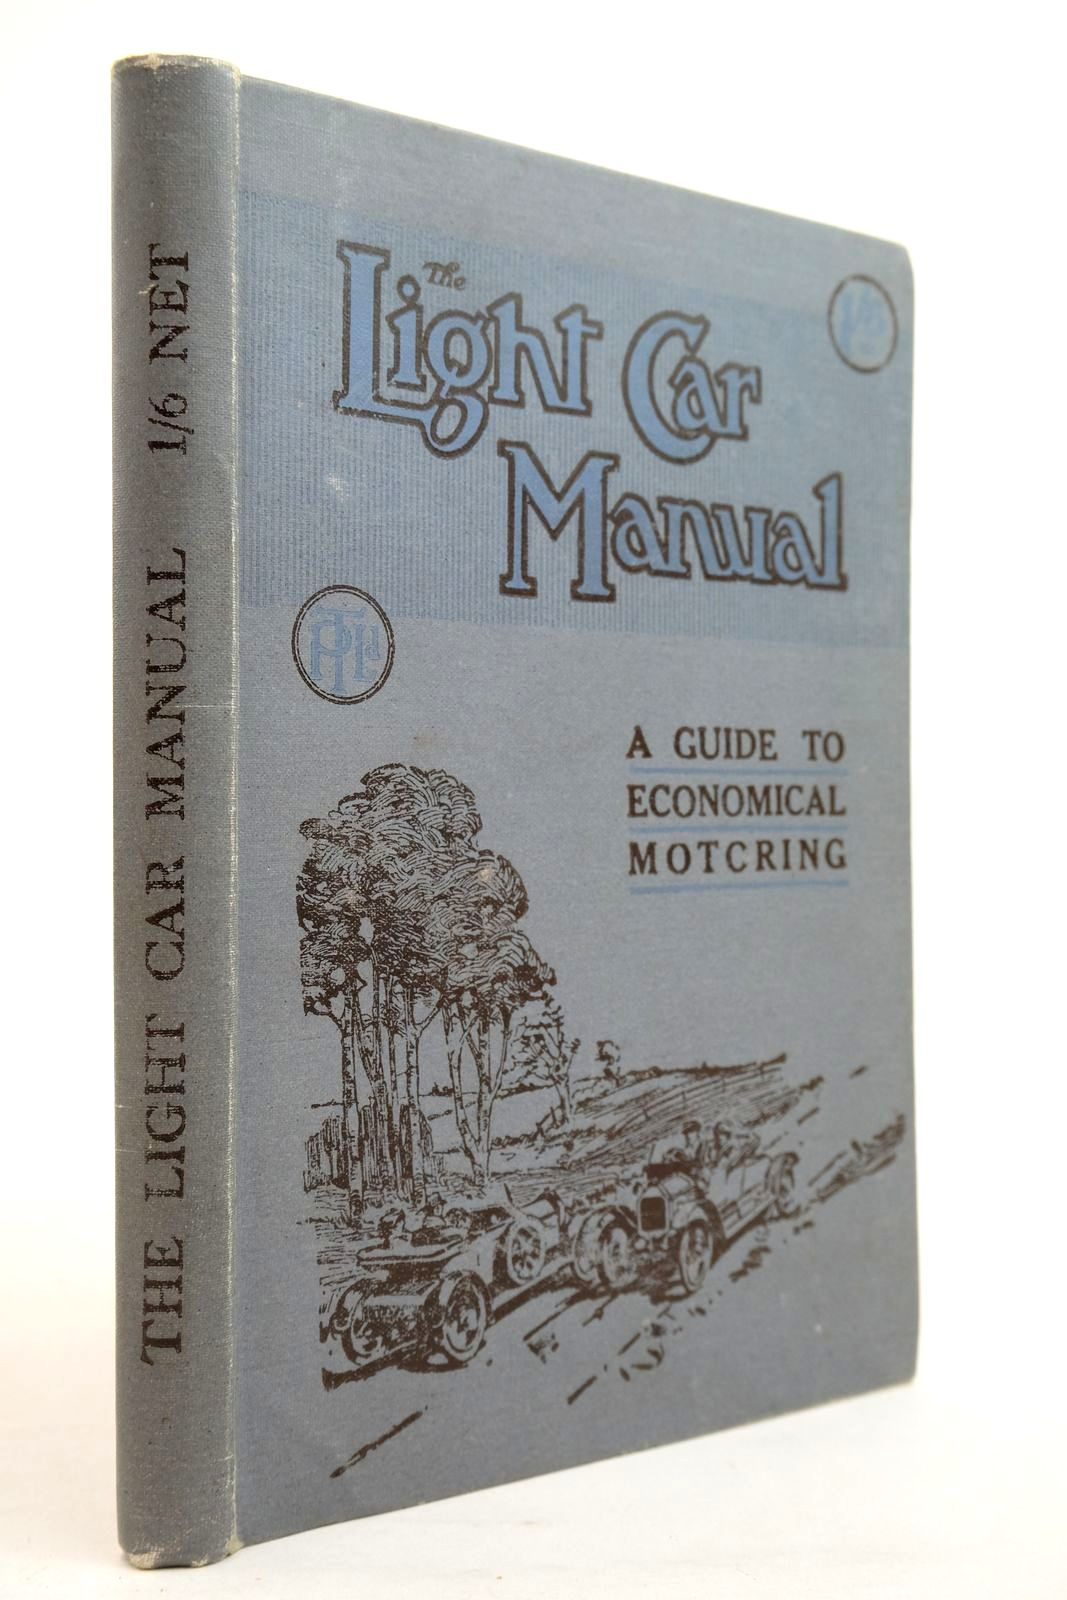 Photo of THE LIGHT CAR MANUAL: A GUIDE TO ECONOMICAL MOTORING published by Temple Press Limited (STOCK CODE: 2134572)  for sale by Stella & Rose's Books